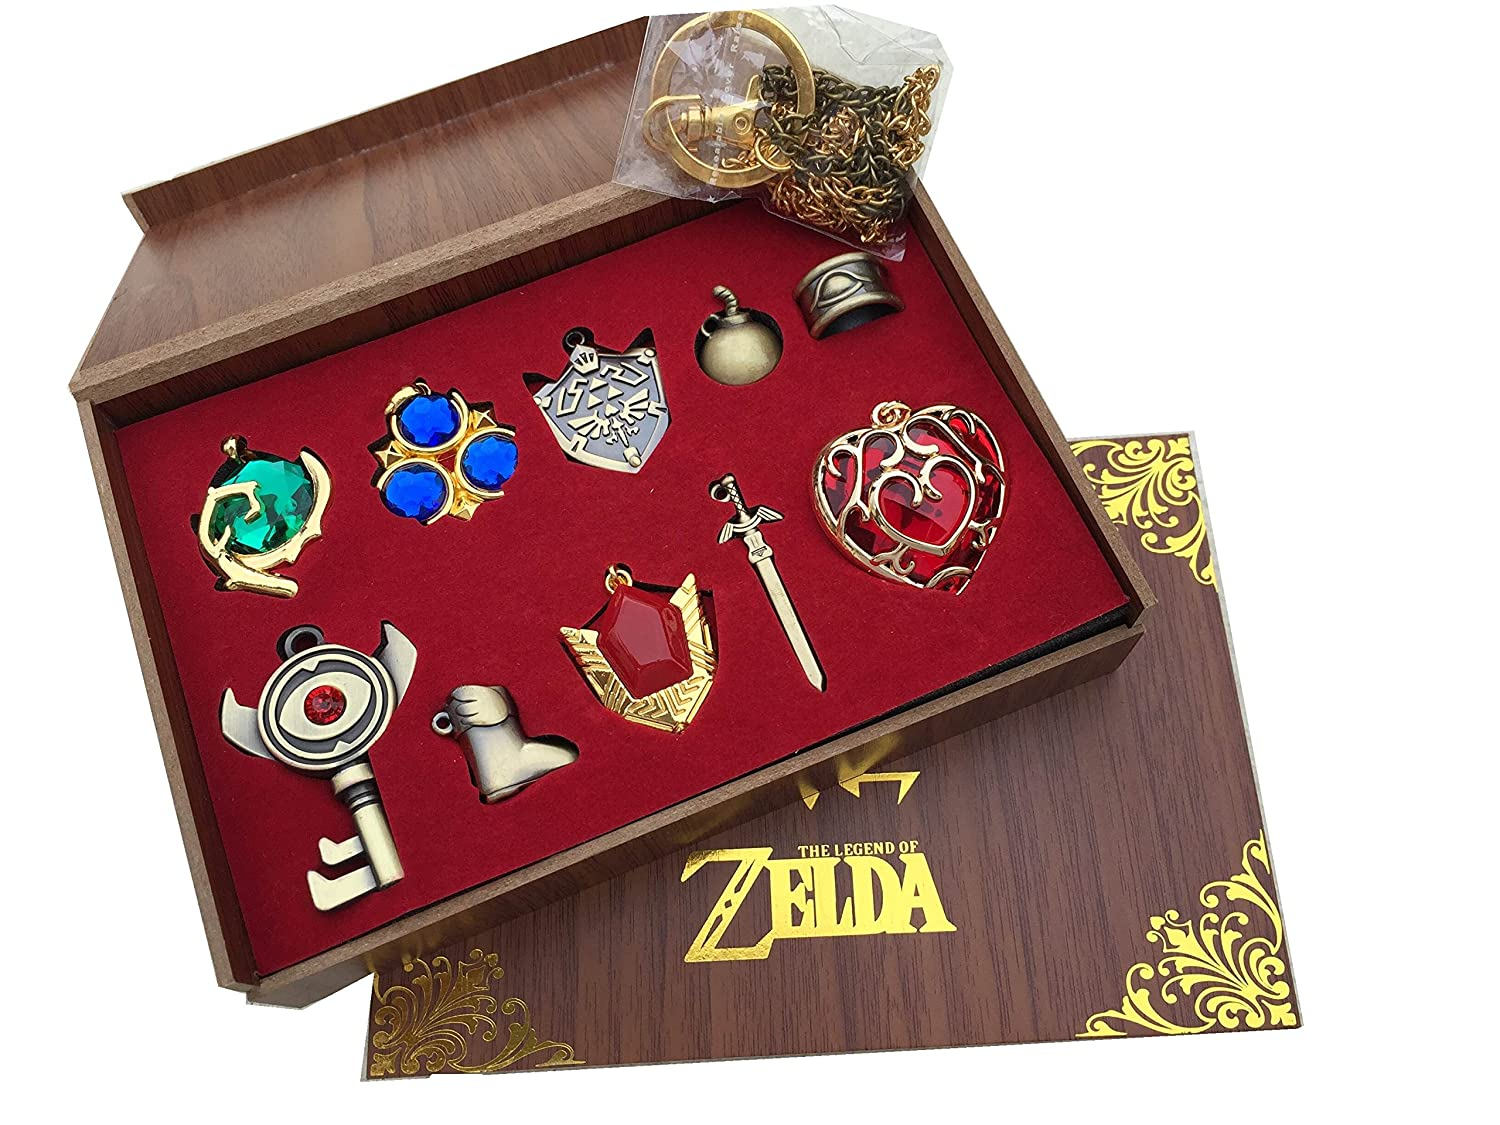 Фото The Legend of Zelda Twilight Princess & Hylian Shield & Master Sword finest collection sets keychain / necklace / jewelry series